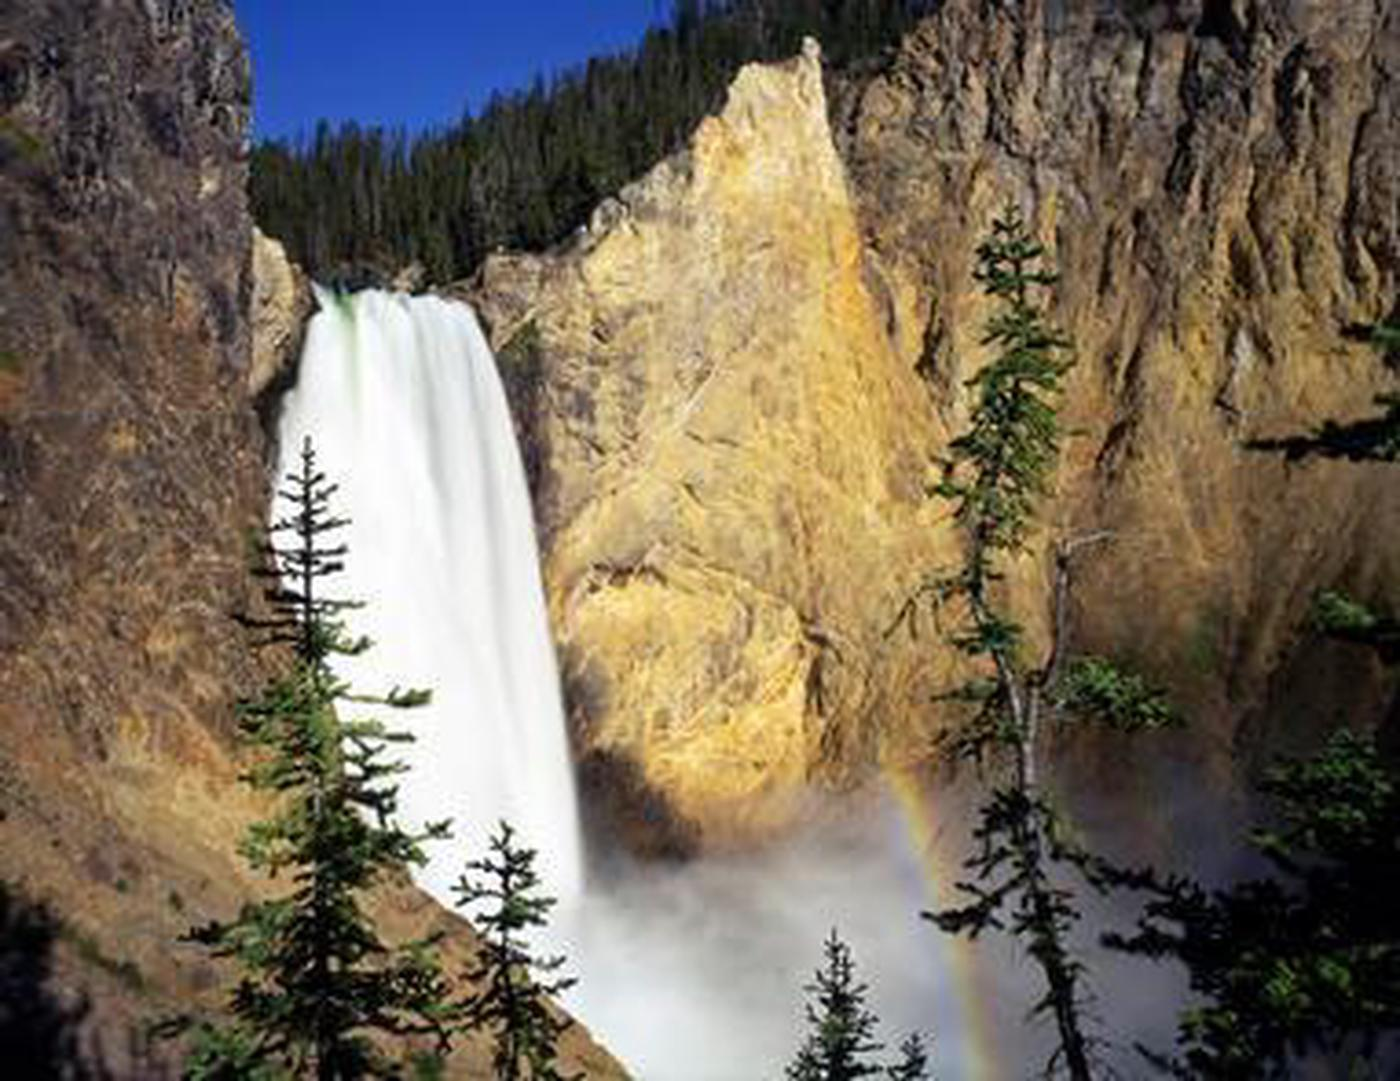 The National ParkRain or snow there is always something to experience at this famed National Park.  Yellowstone has become synonymous with families exploring the natural wonders of the United States.